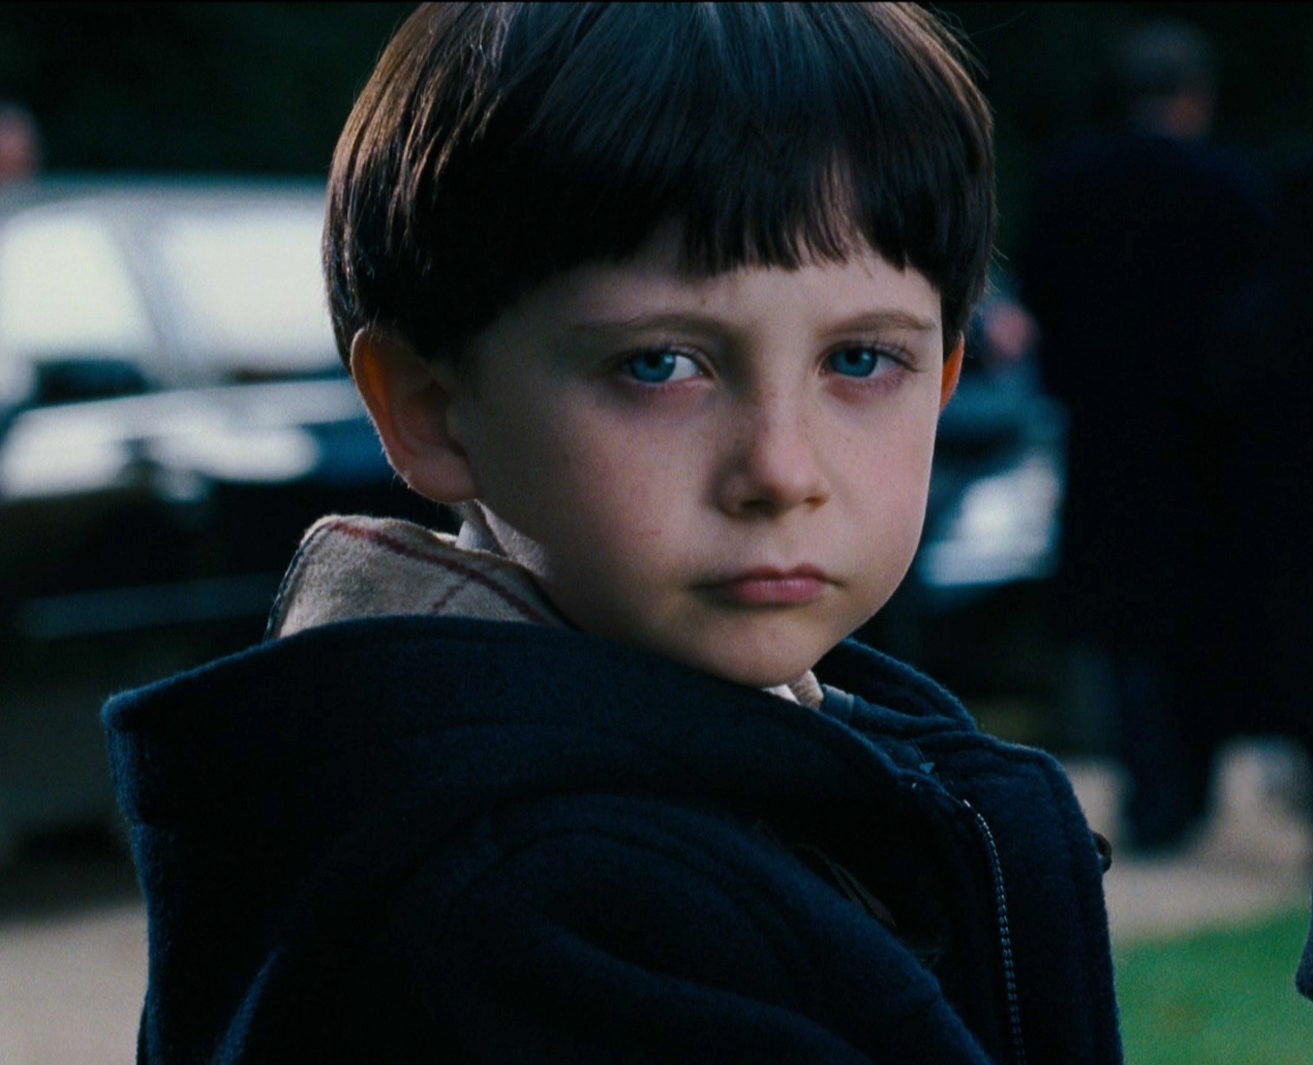 Image gallery the omen 2006 for Portent meaning in english